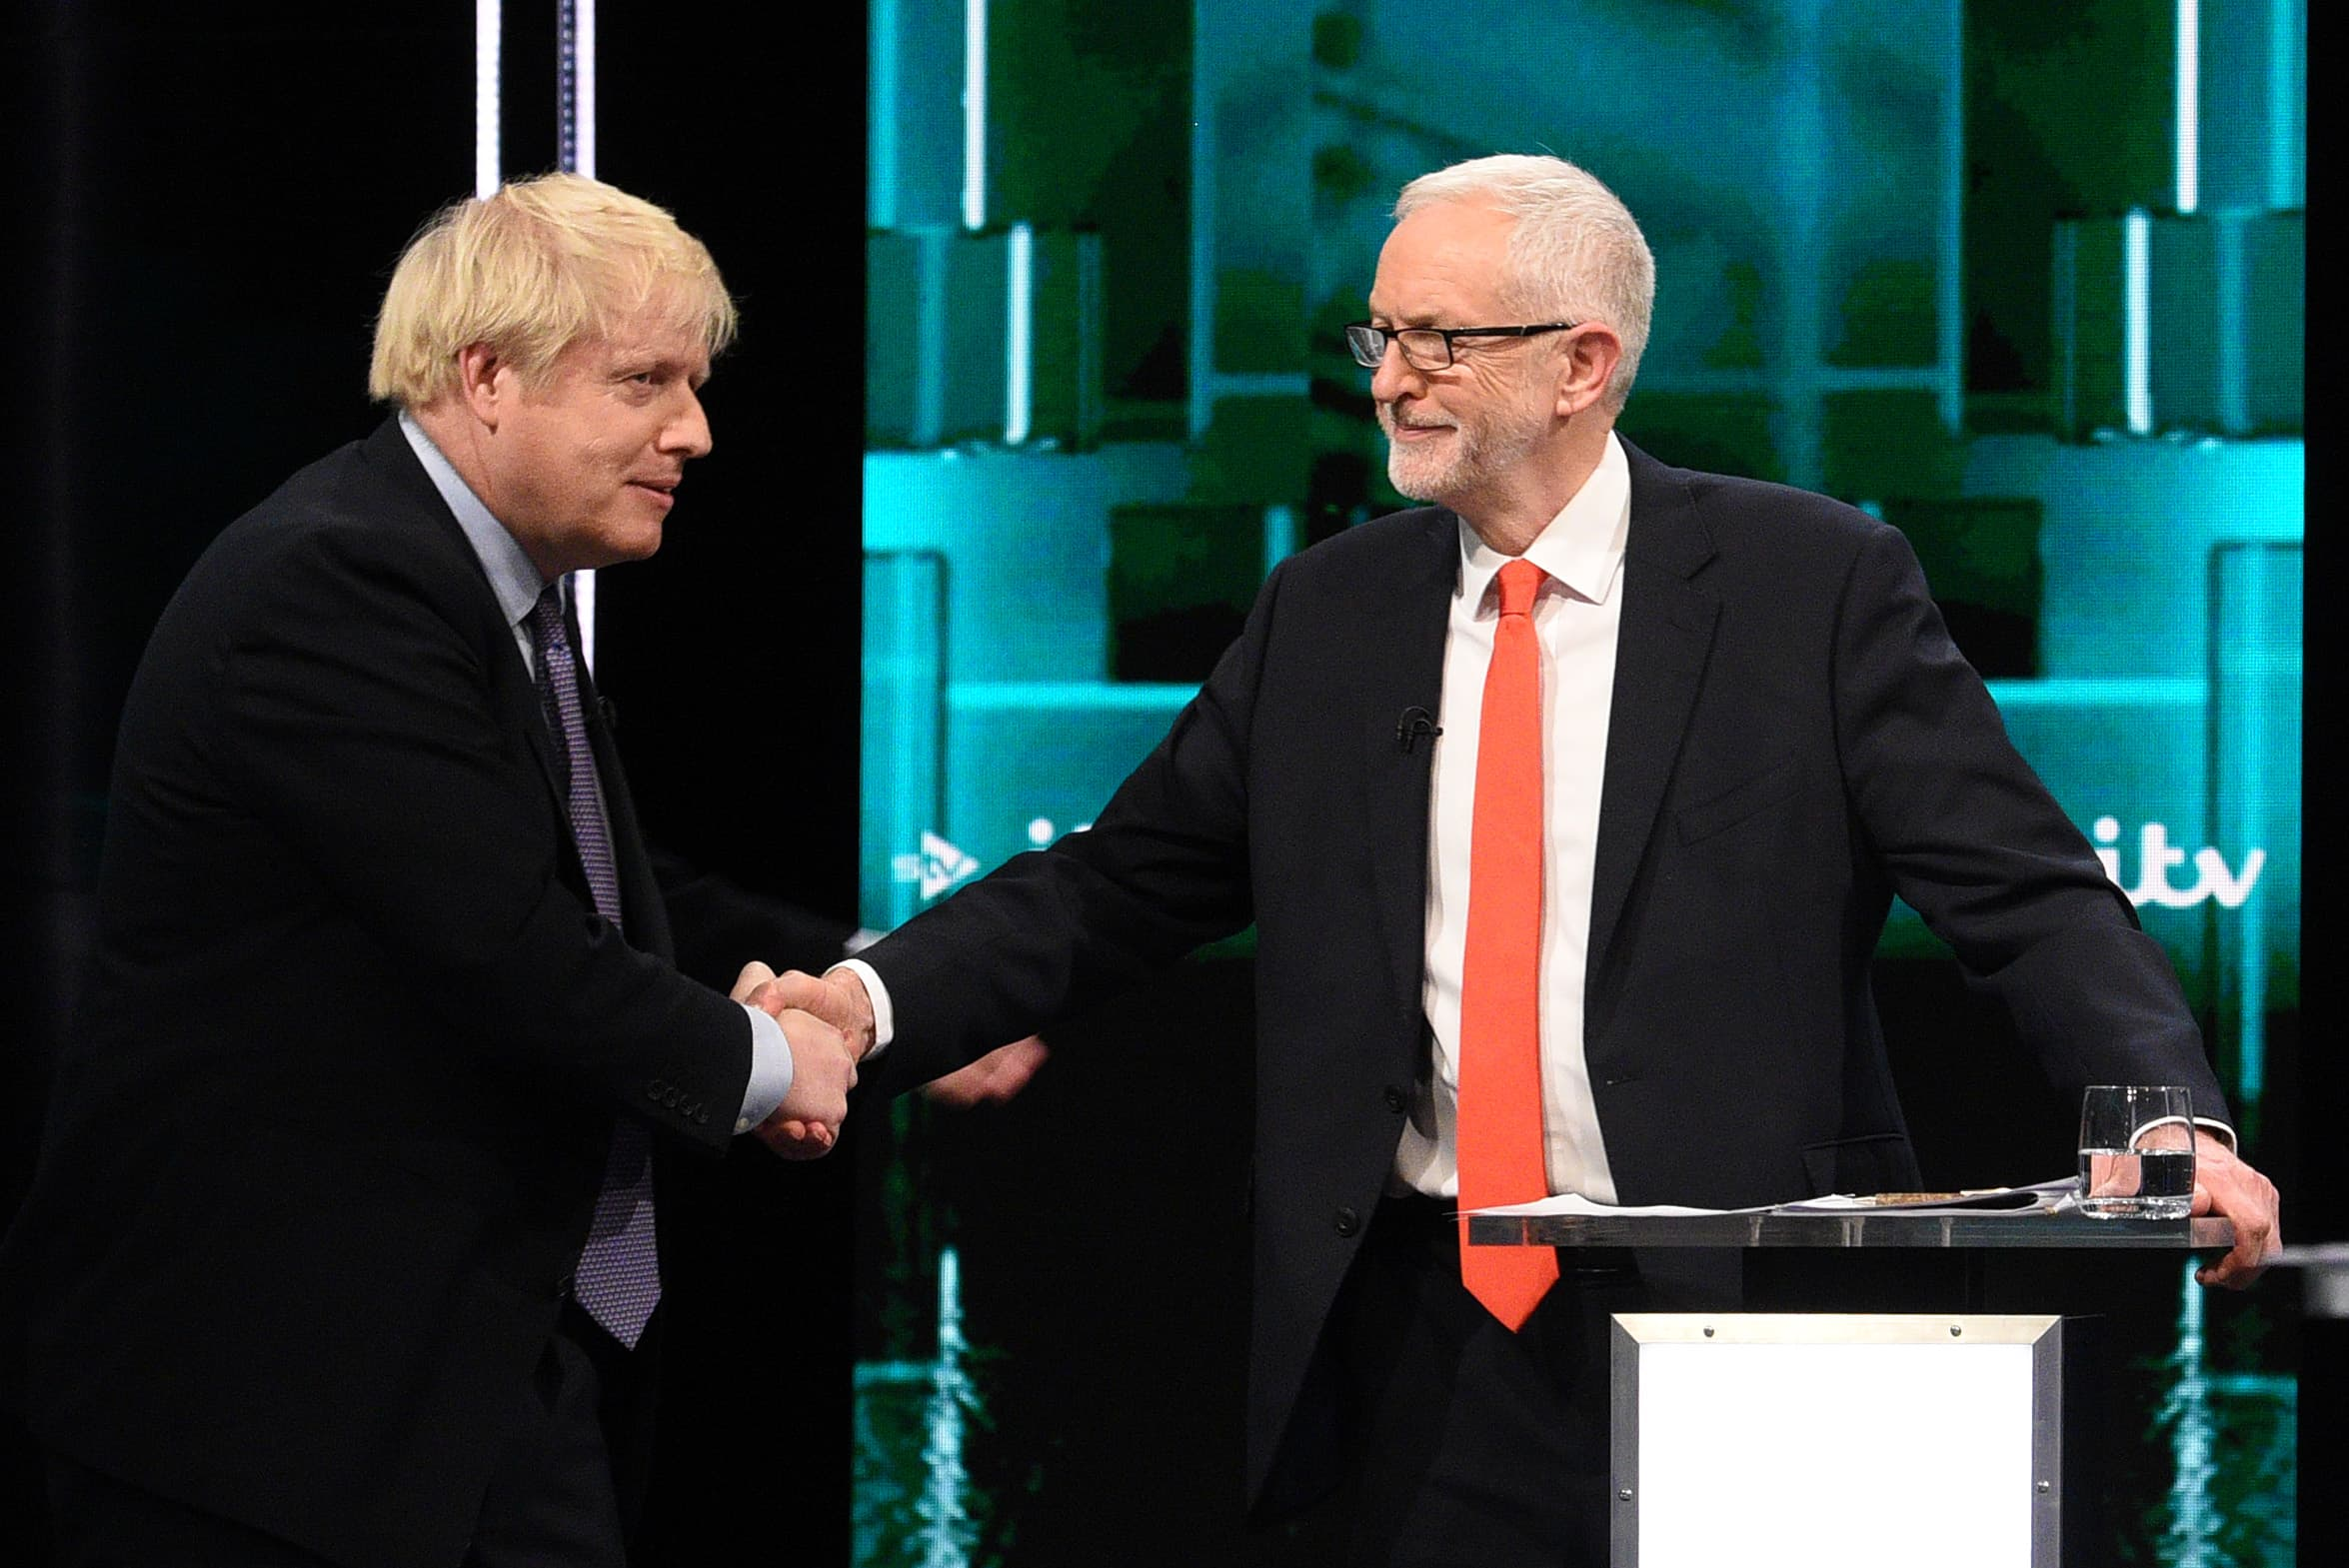 British public stuck with two 'dreadful' candidates for prime minister, economist says